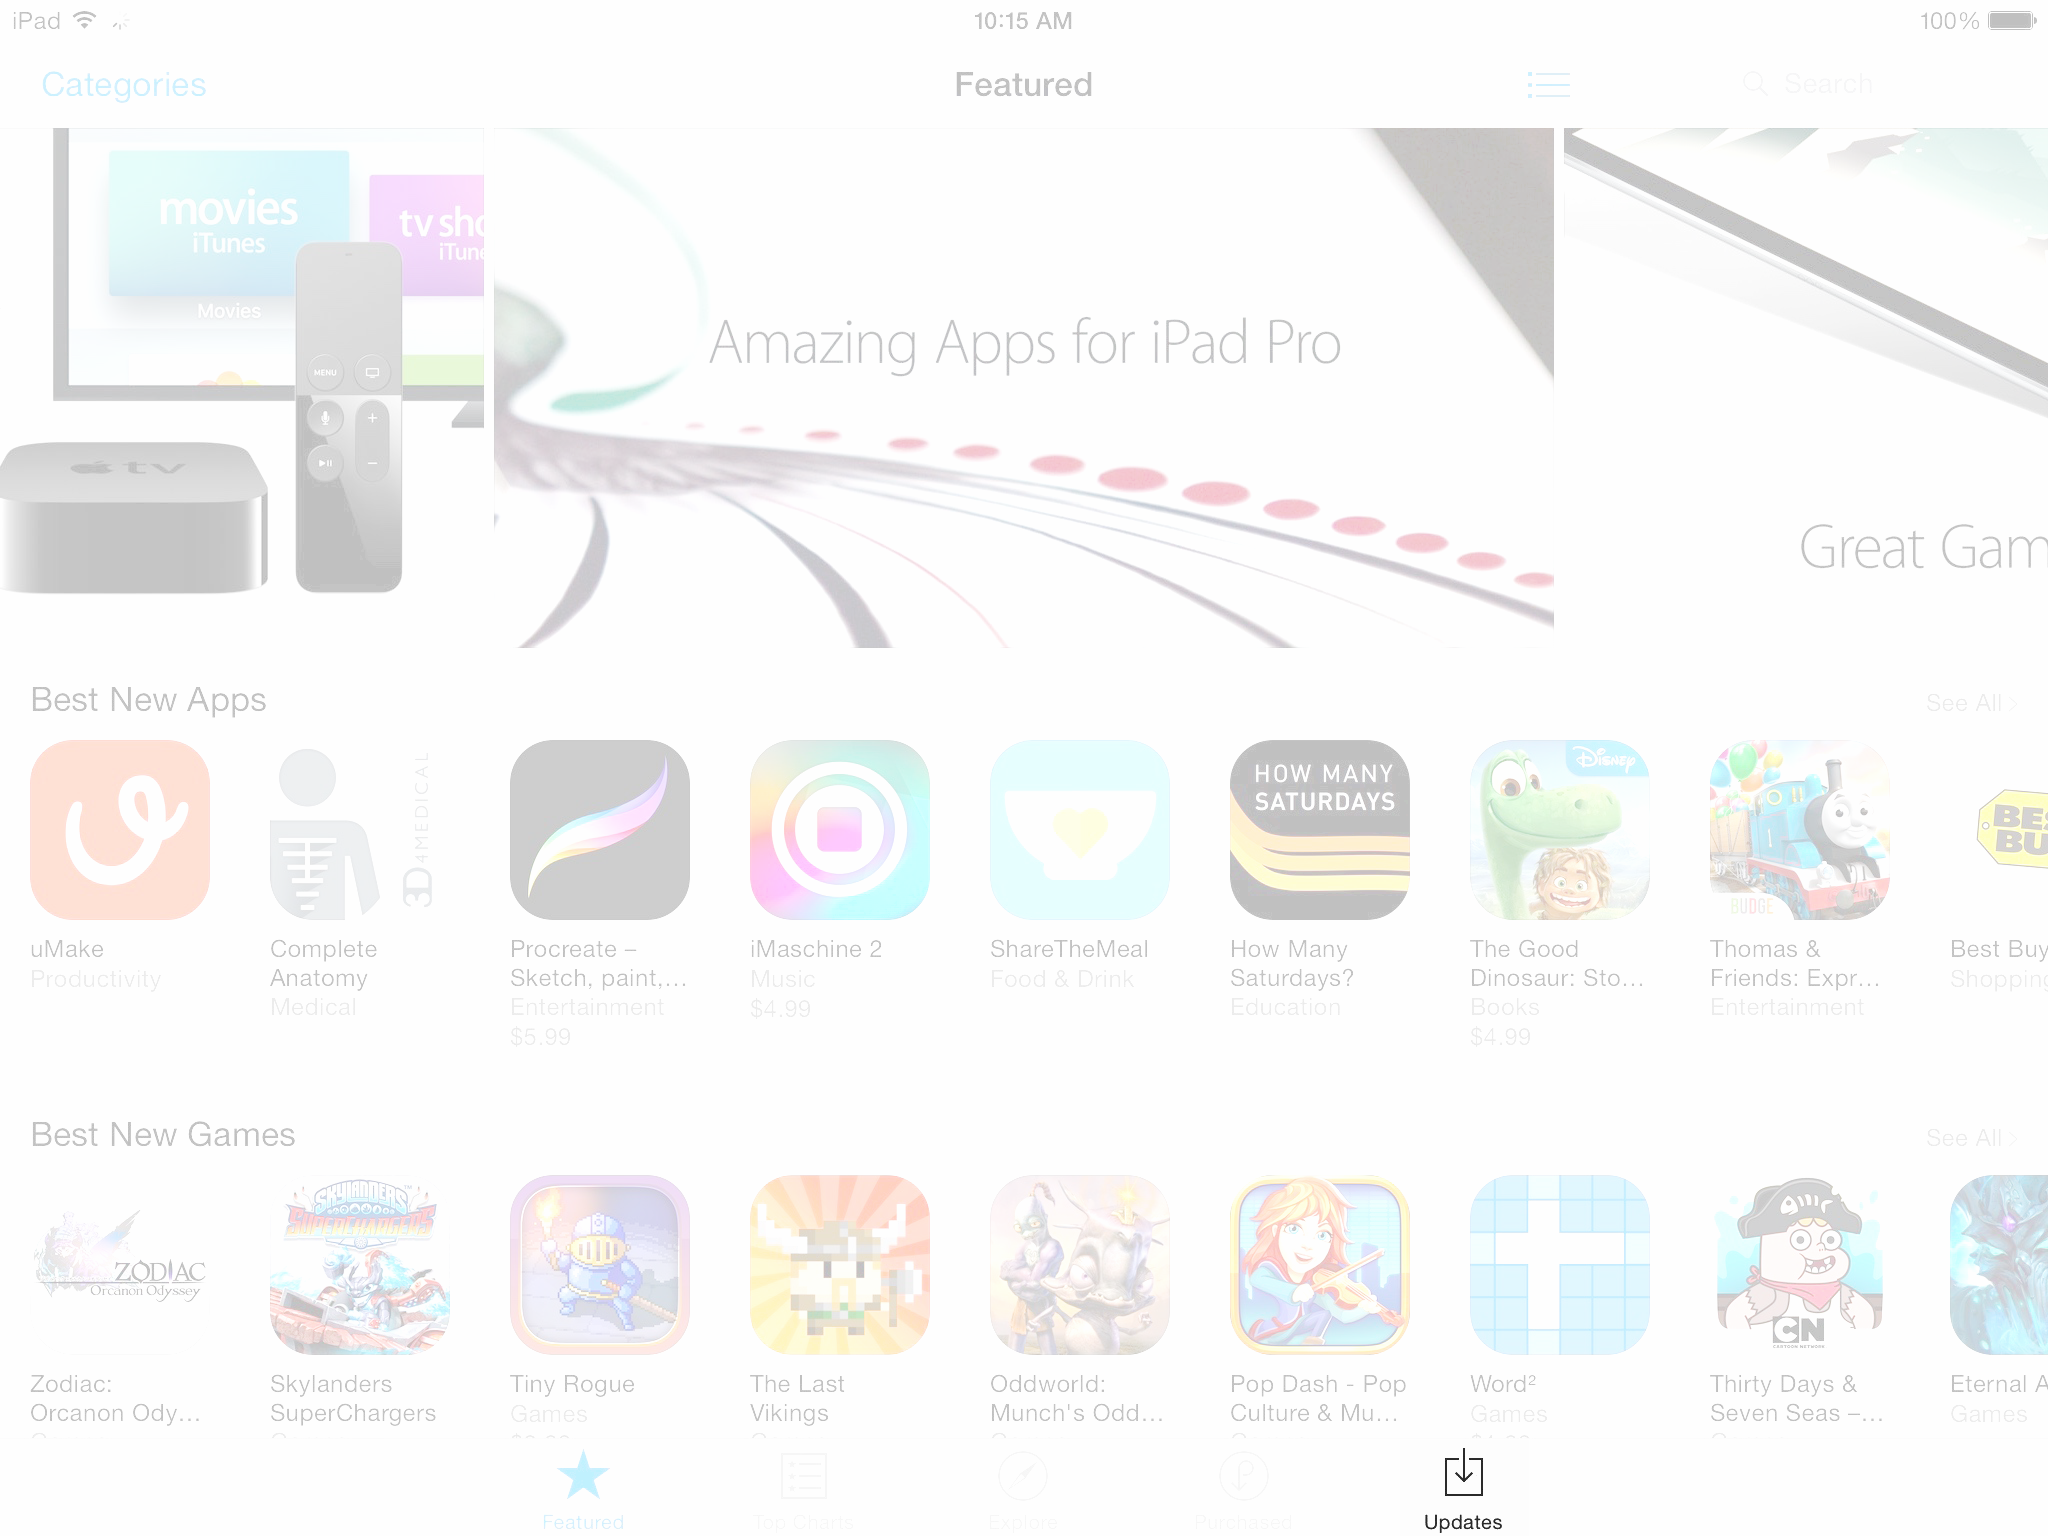 image of app store with updates highlighted